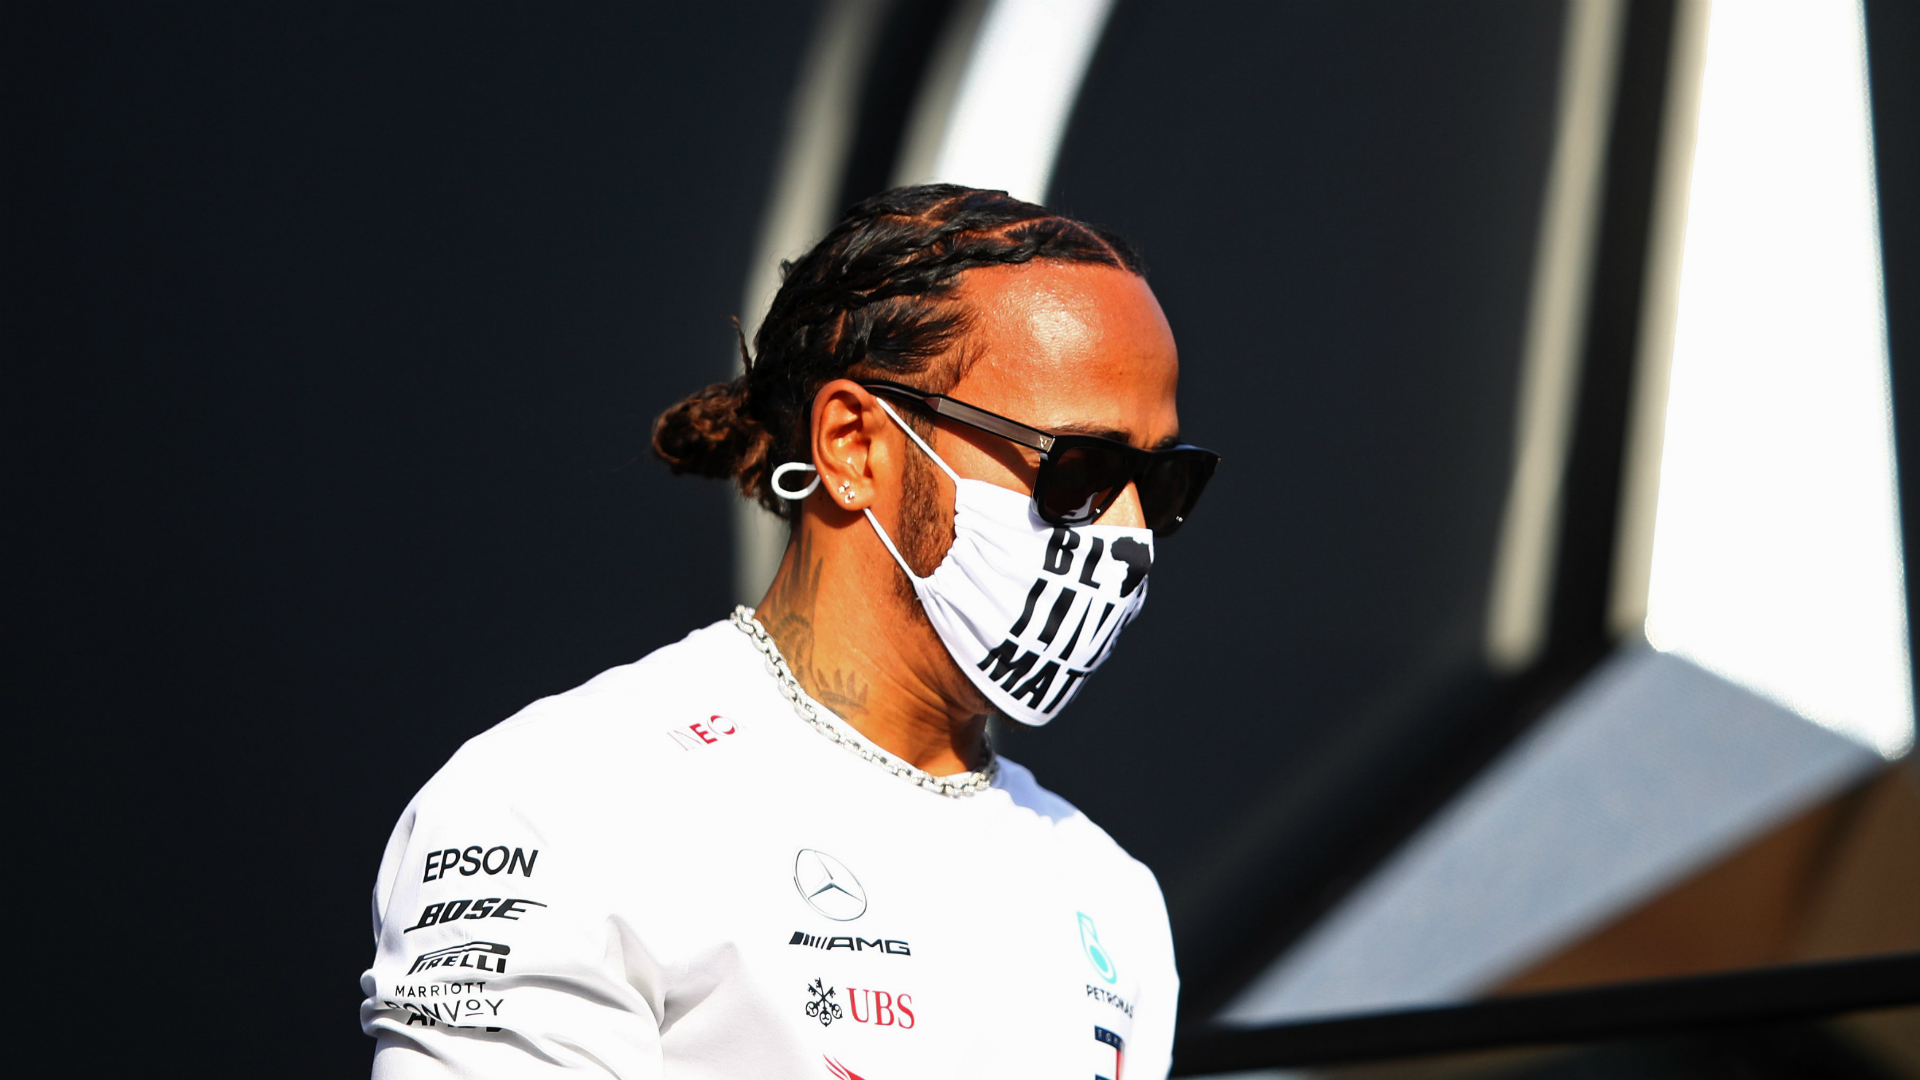 Hamilton: F1 driver salary cap 'has nothing to do' with contract delay